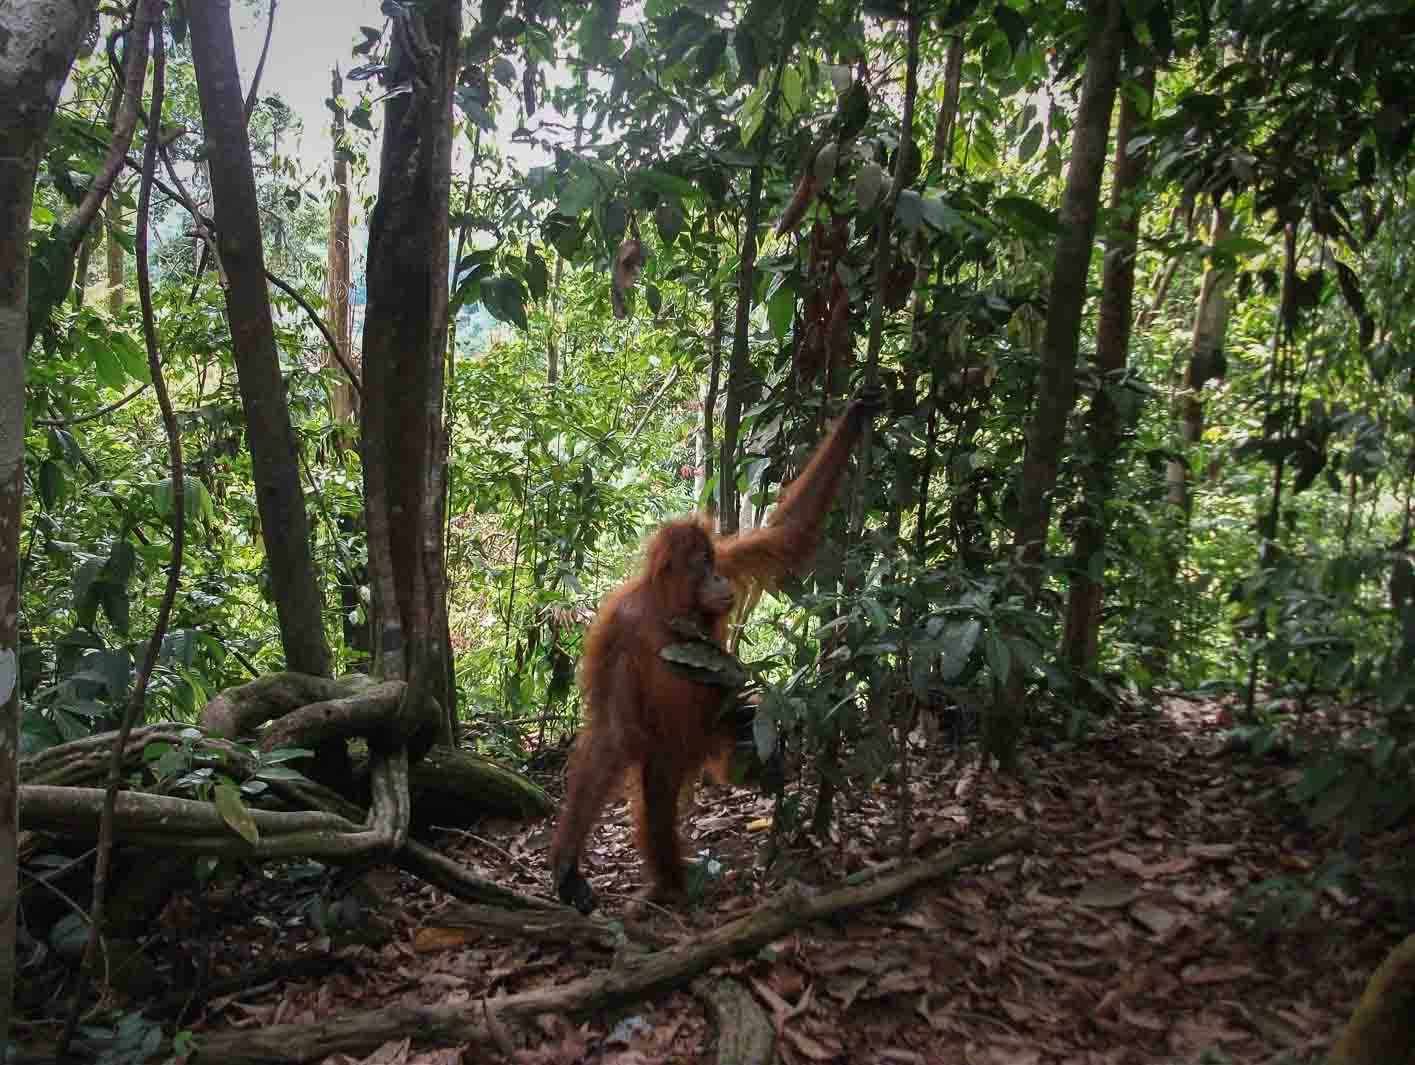 two days trekking to see Orangutan walking in the jungle of Bukit Lawang in Sumatra